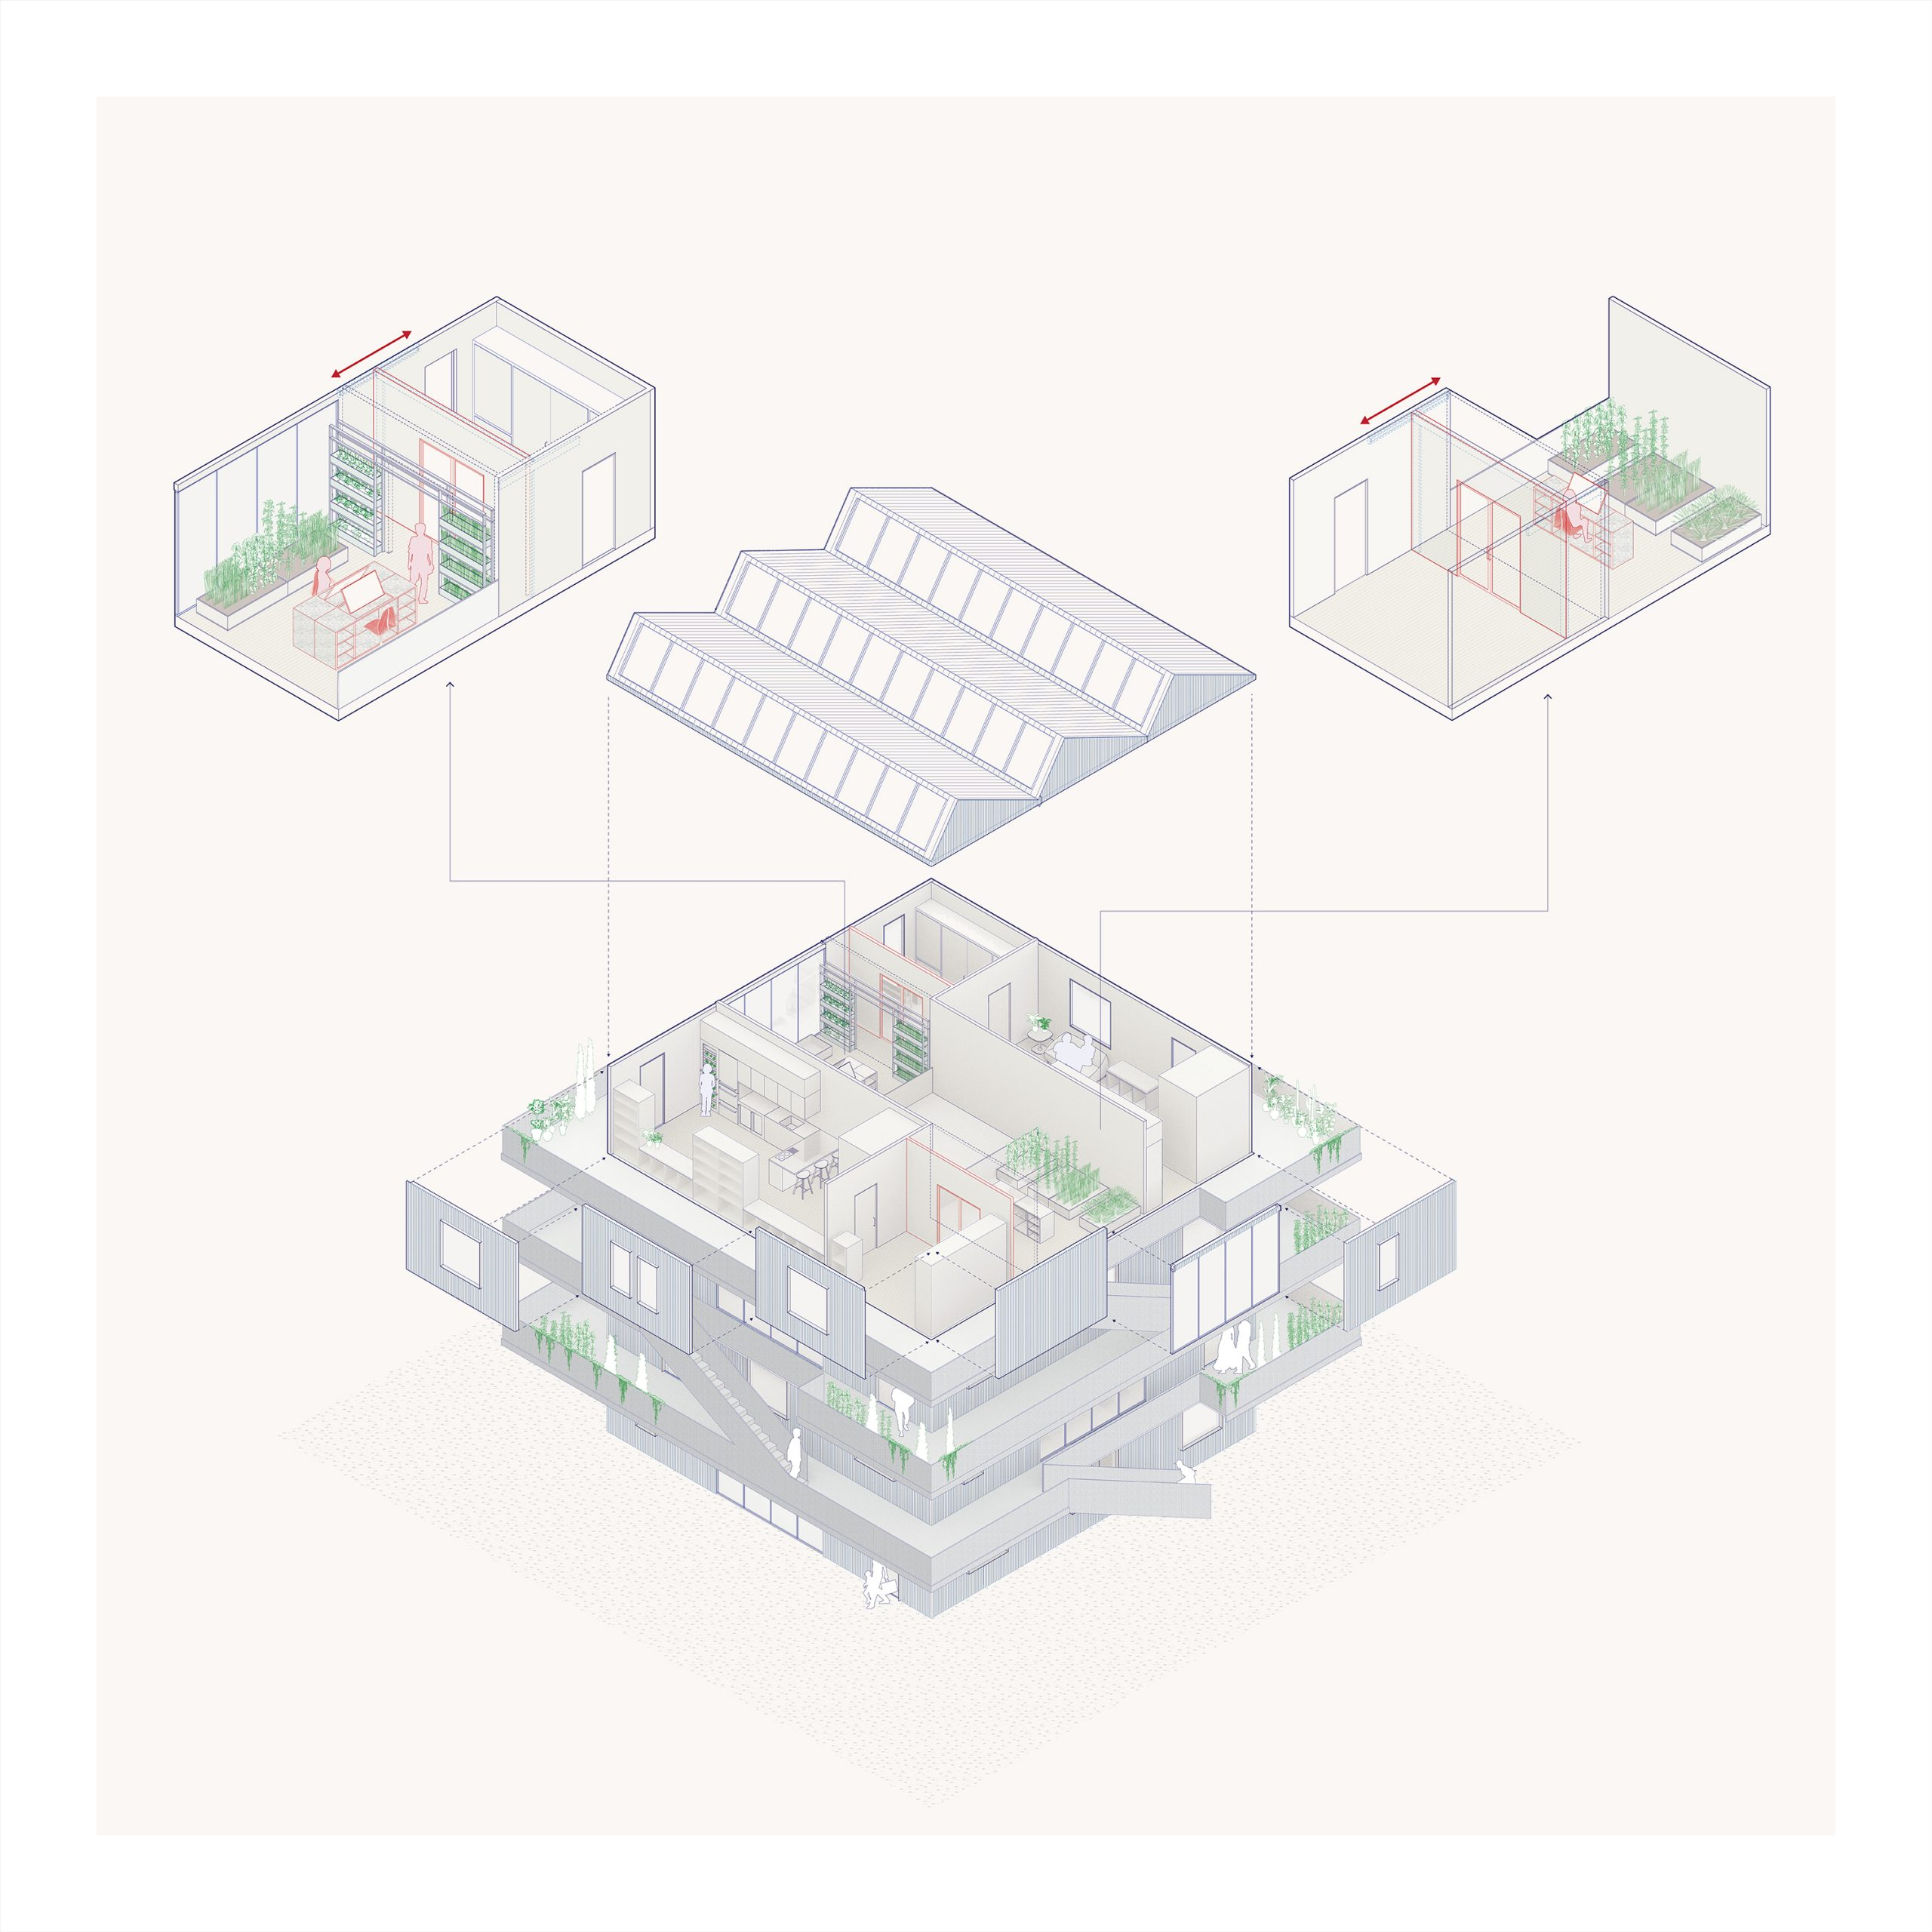 Pixel-culture: Exploring the new work x live x grow typology - by Nathan Keebler